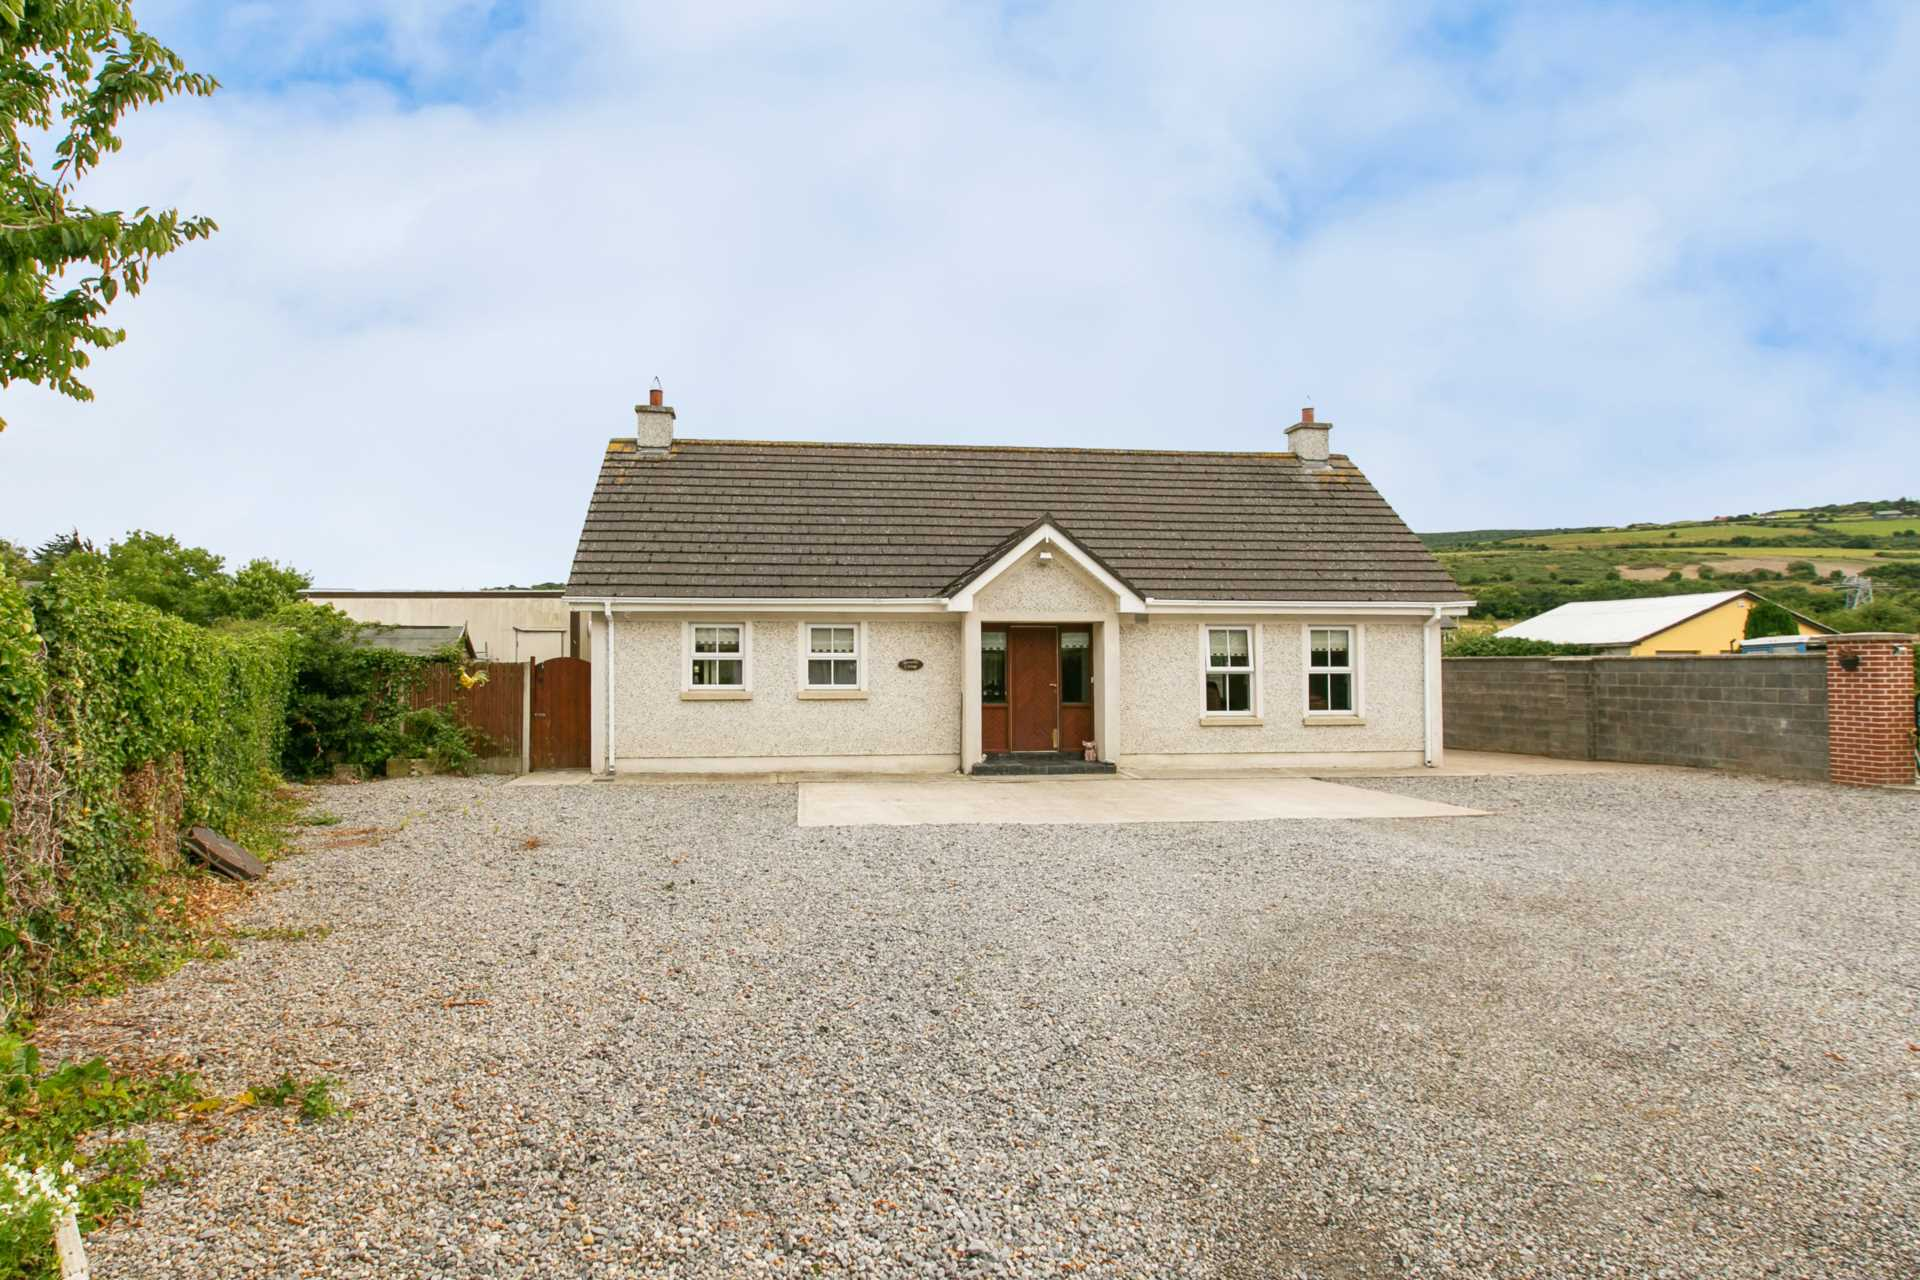 20a Old Court Cottages, Ballycullen, Dublin 24, Image 3